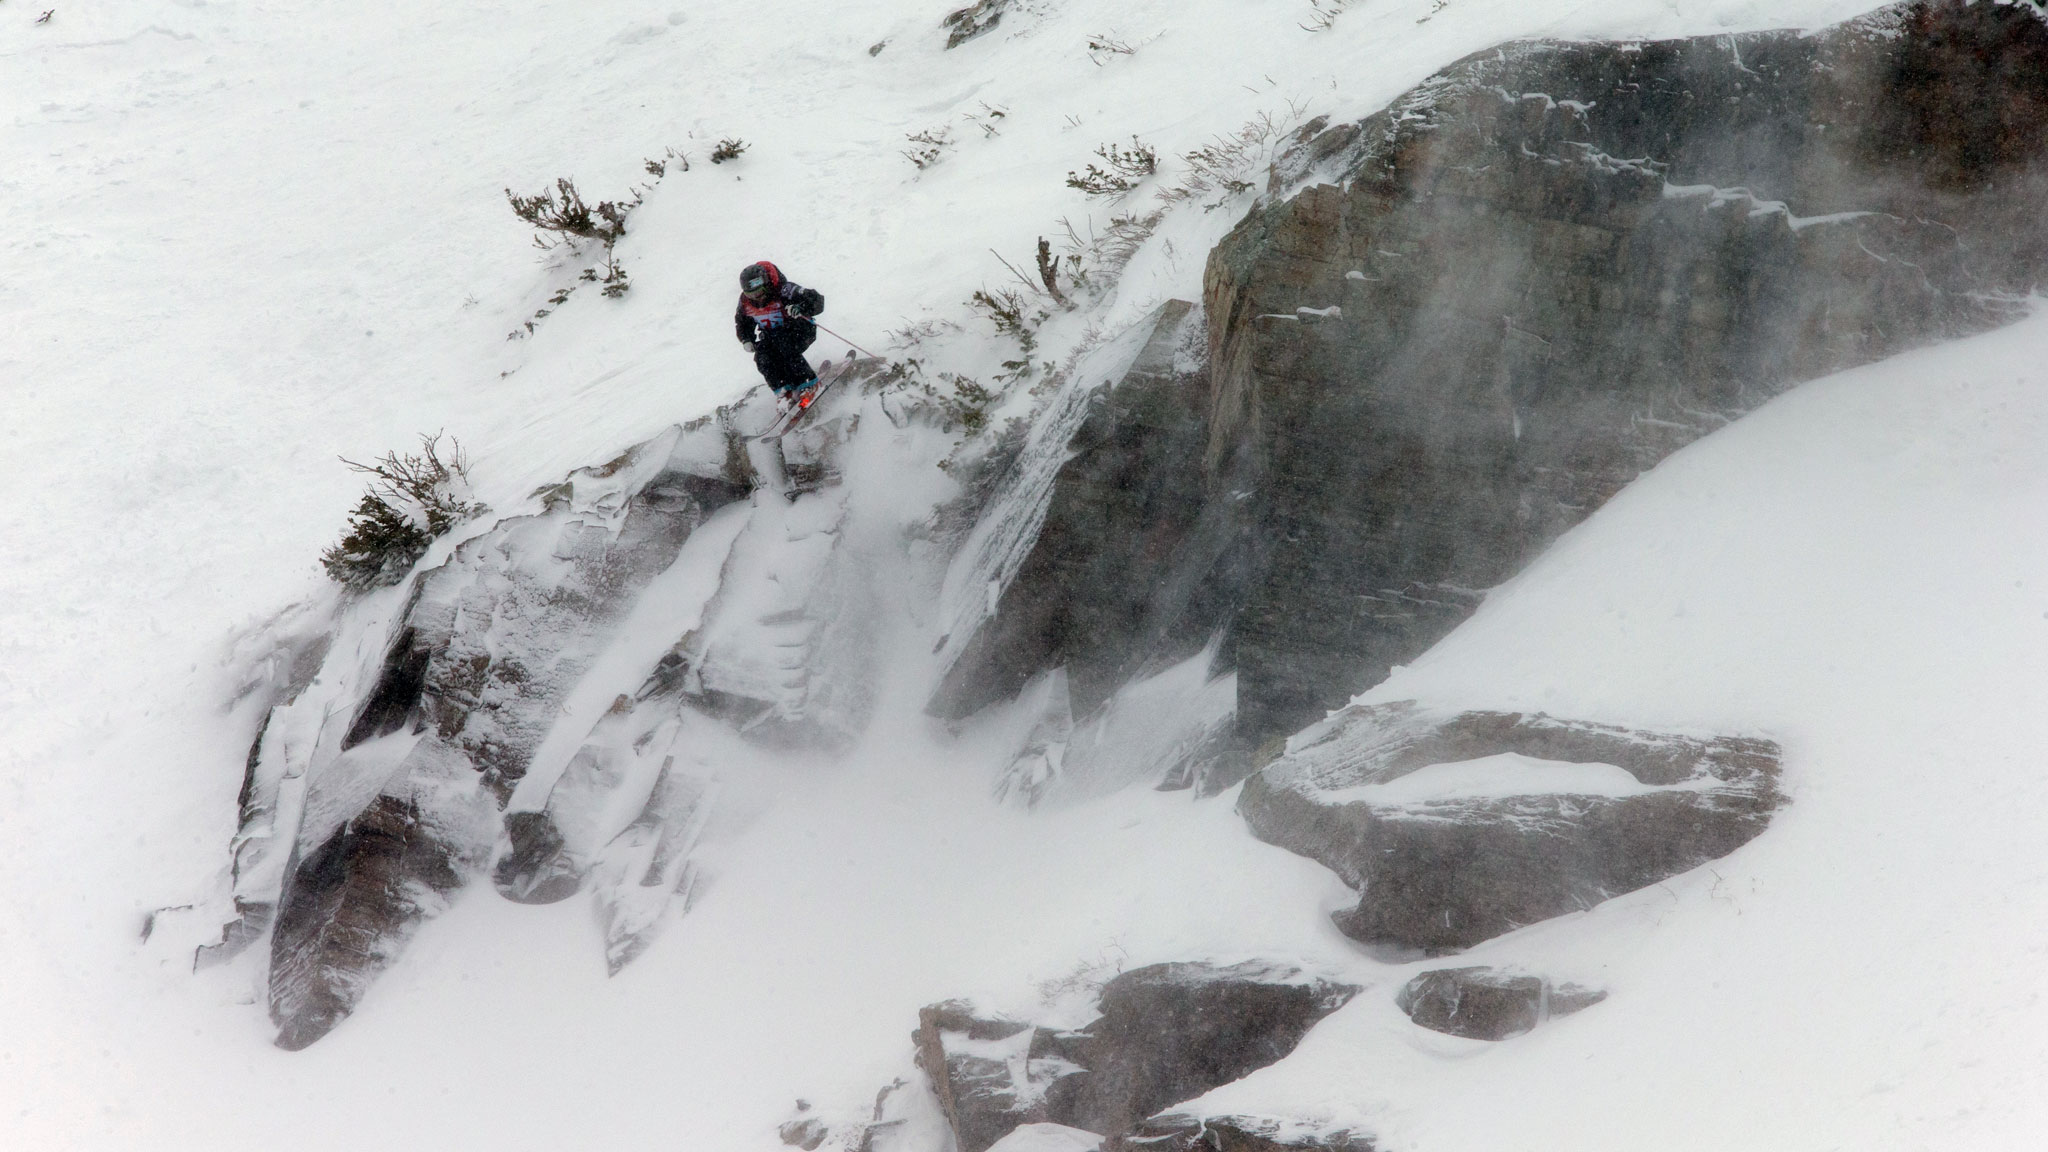 Francesca Pavillard-Cain, from Crested Butte, Colo., was the top qualifying woman to advance to next winter's Freeride World Tour.